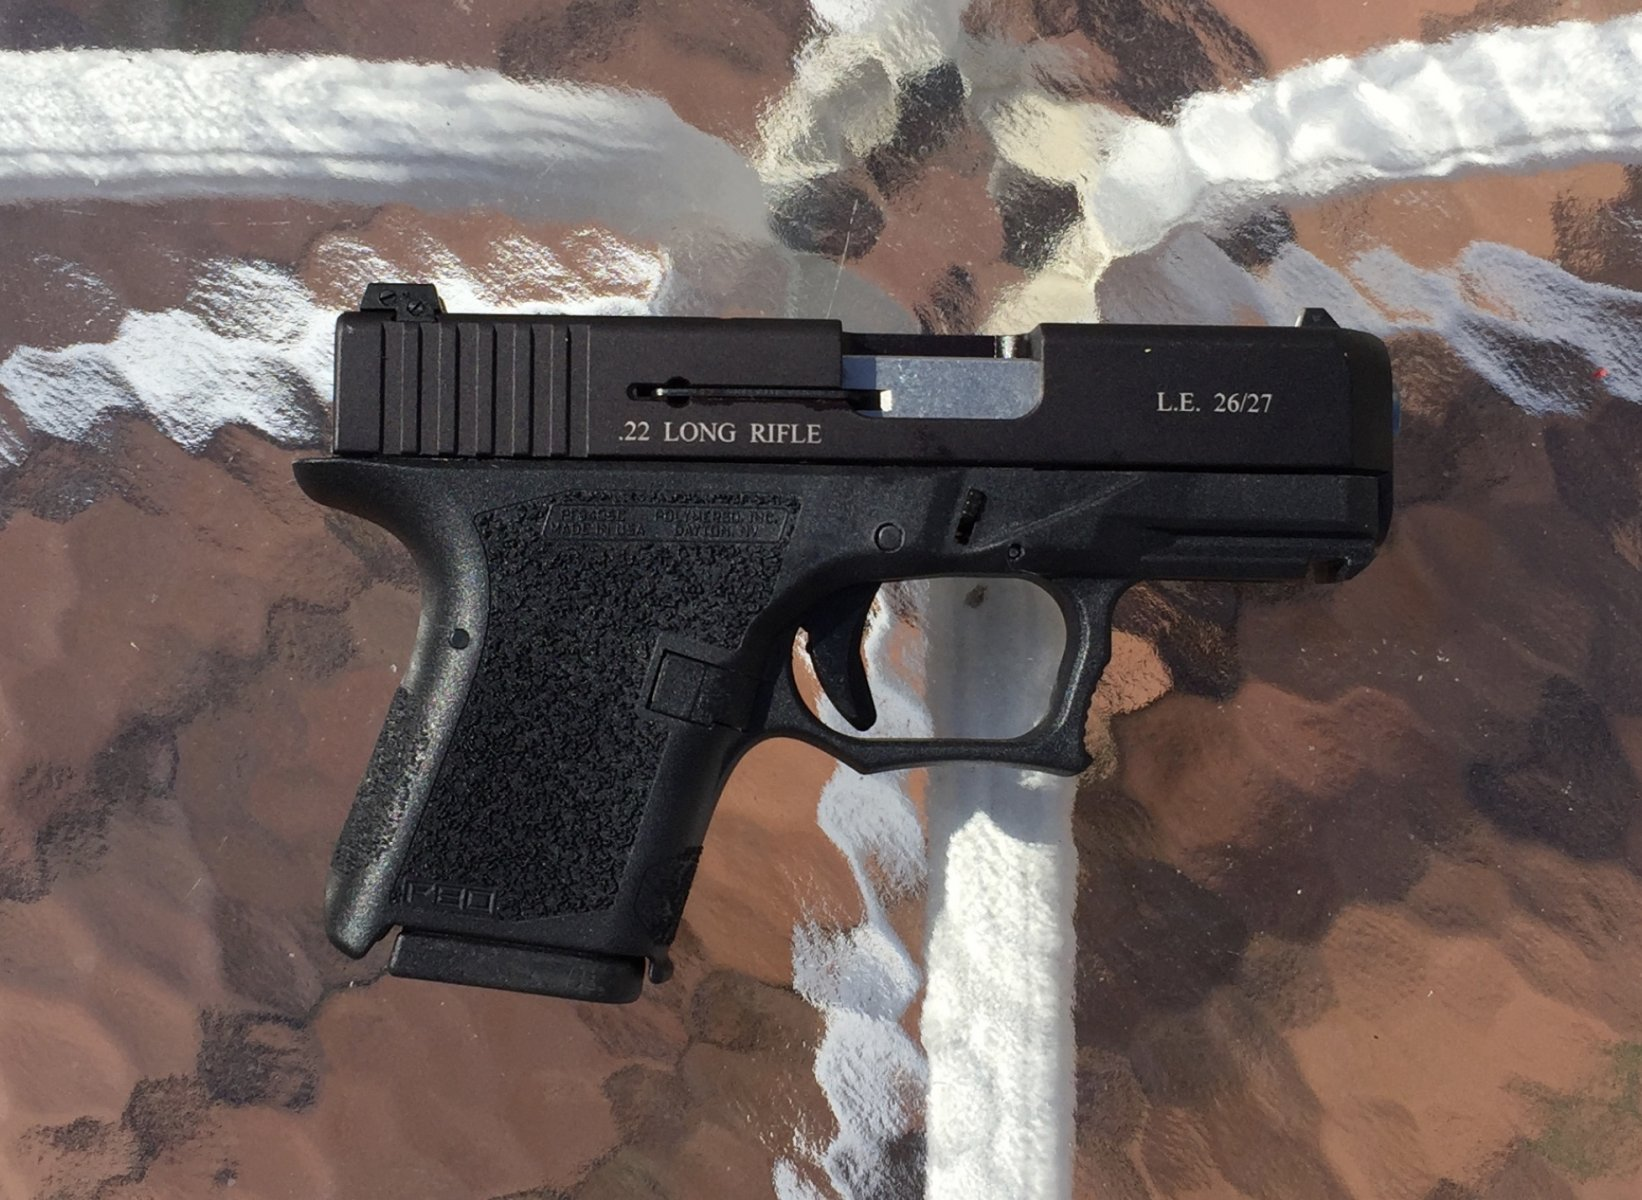 Polymer80 Subcompact | The Leading Glock Forum and Community